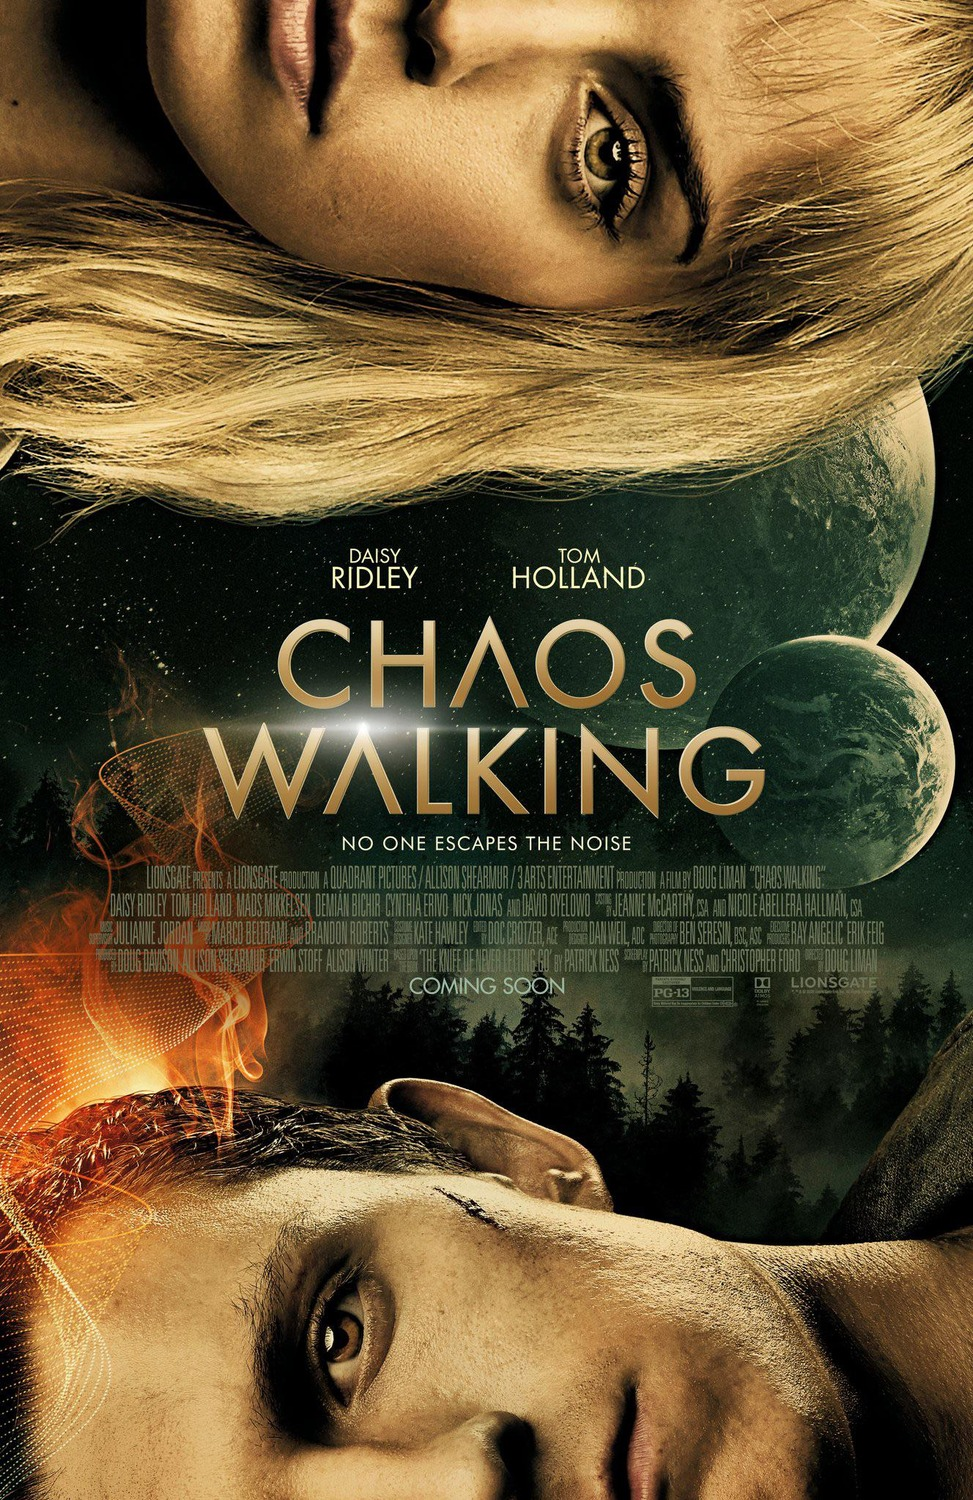 Chaos Walking in caps with moon and forest behind it. Half (horizontally) of Holland and Ridley's faces are on opposite sides of the poster, hers at the his at the bottom.